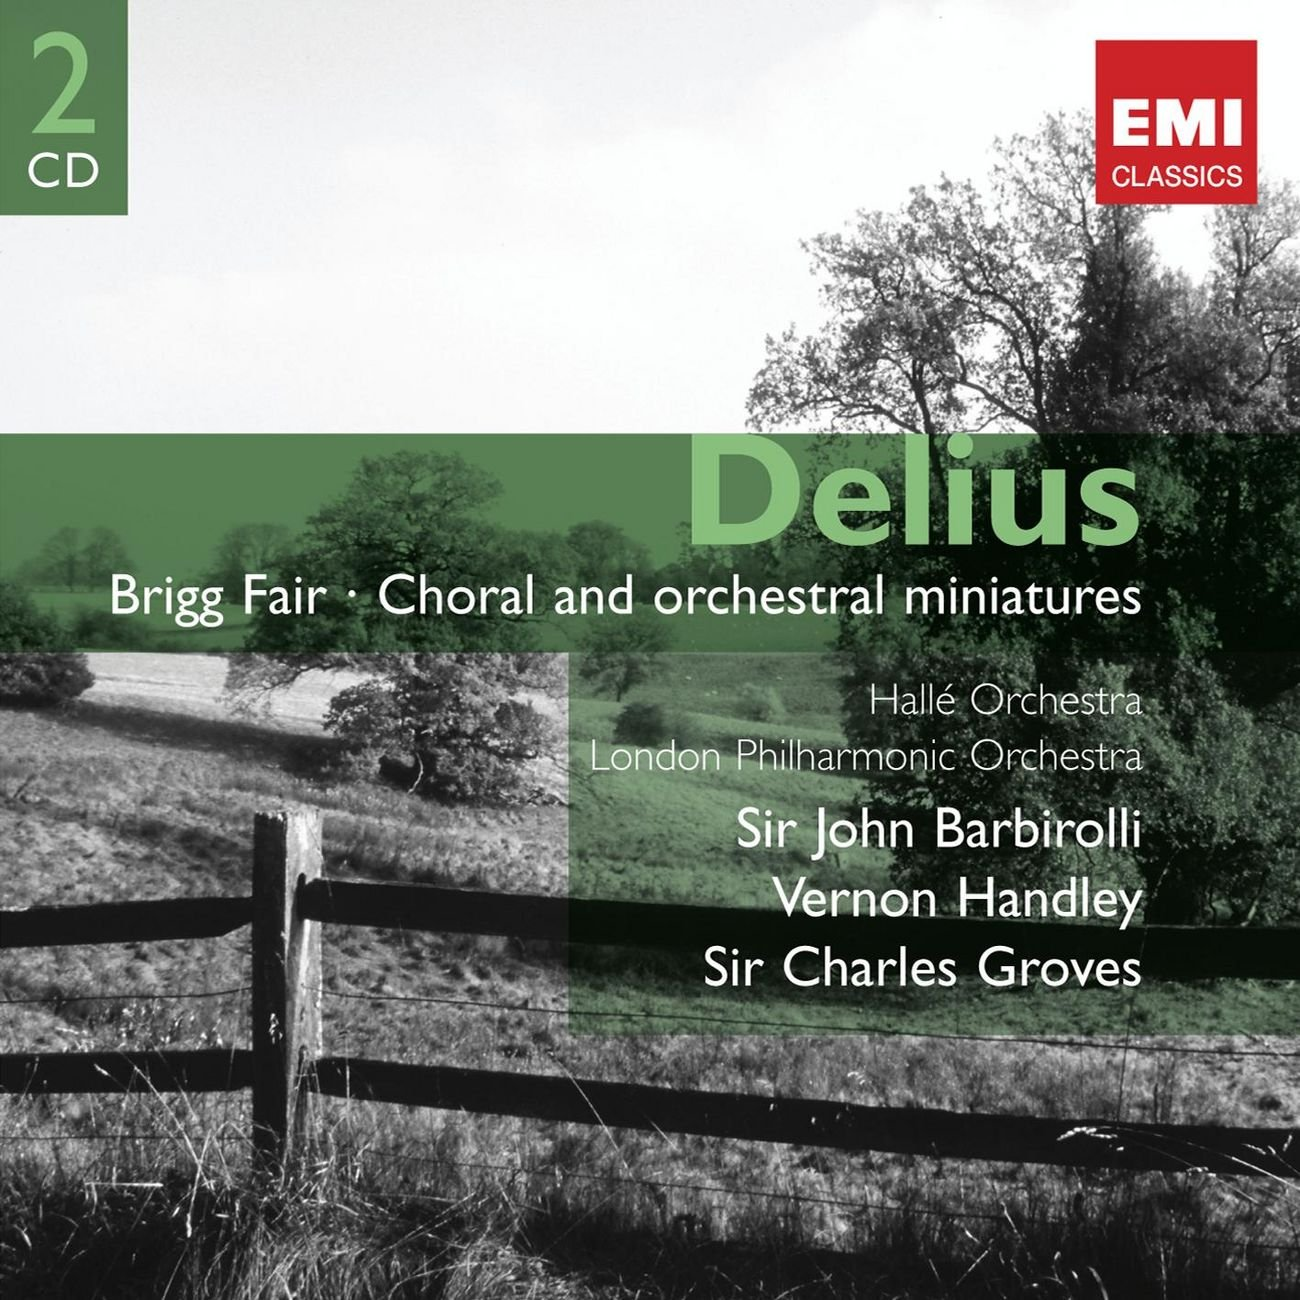 Delius: Brigg Fair, Choral and Orchestral Miniatures (2 CDs)